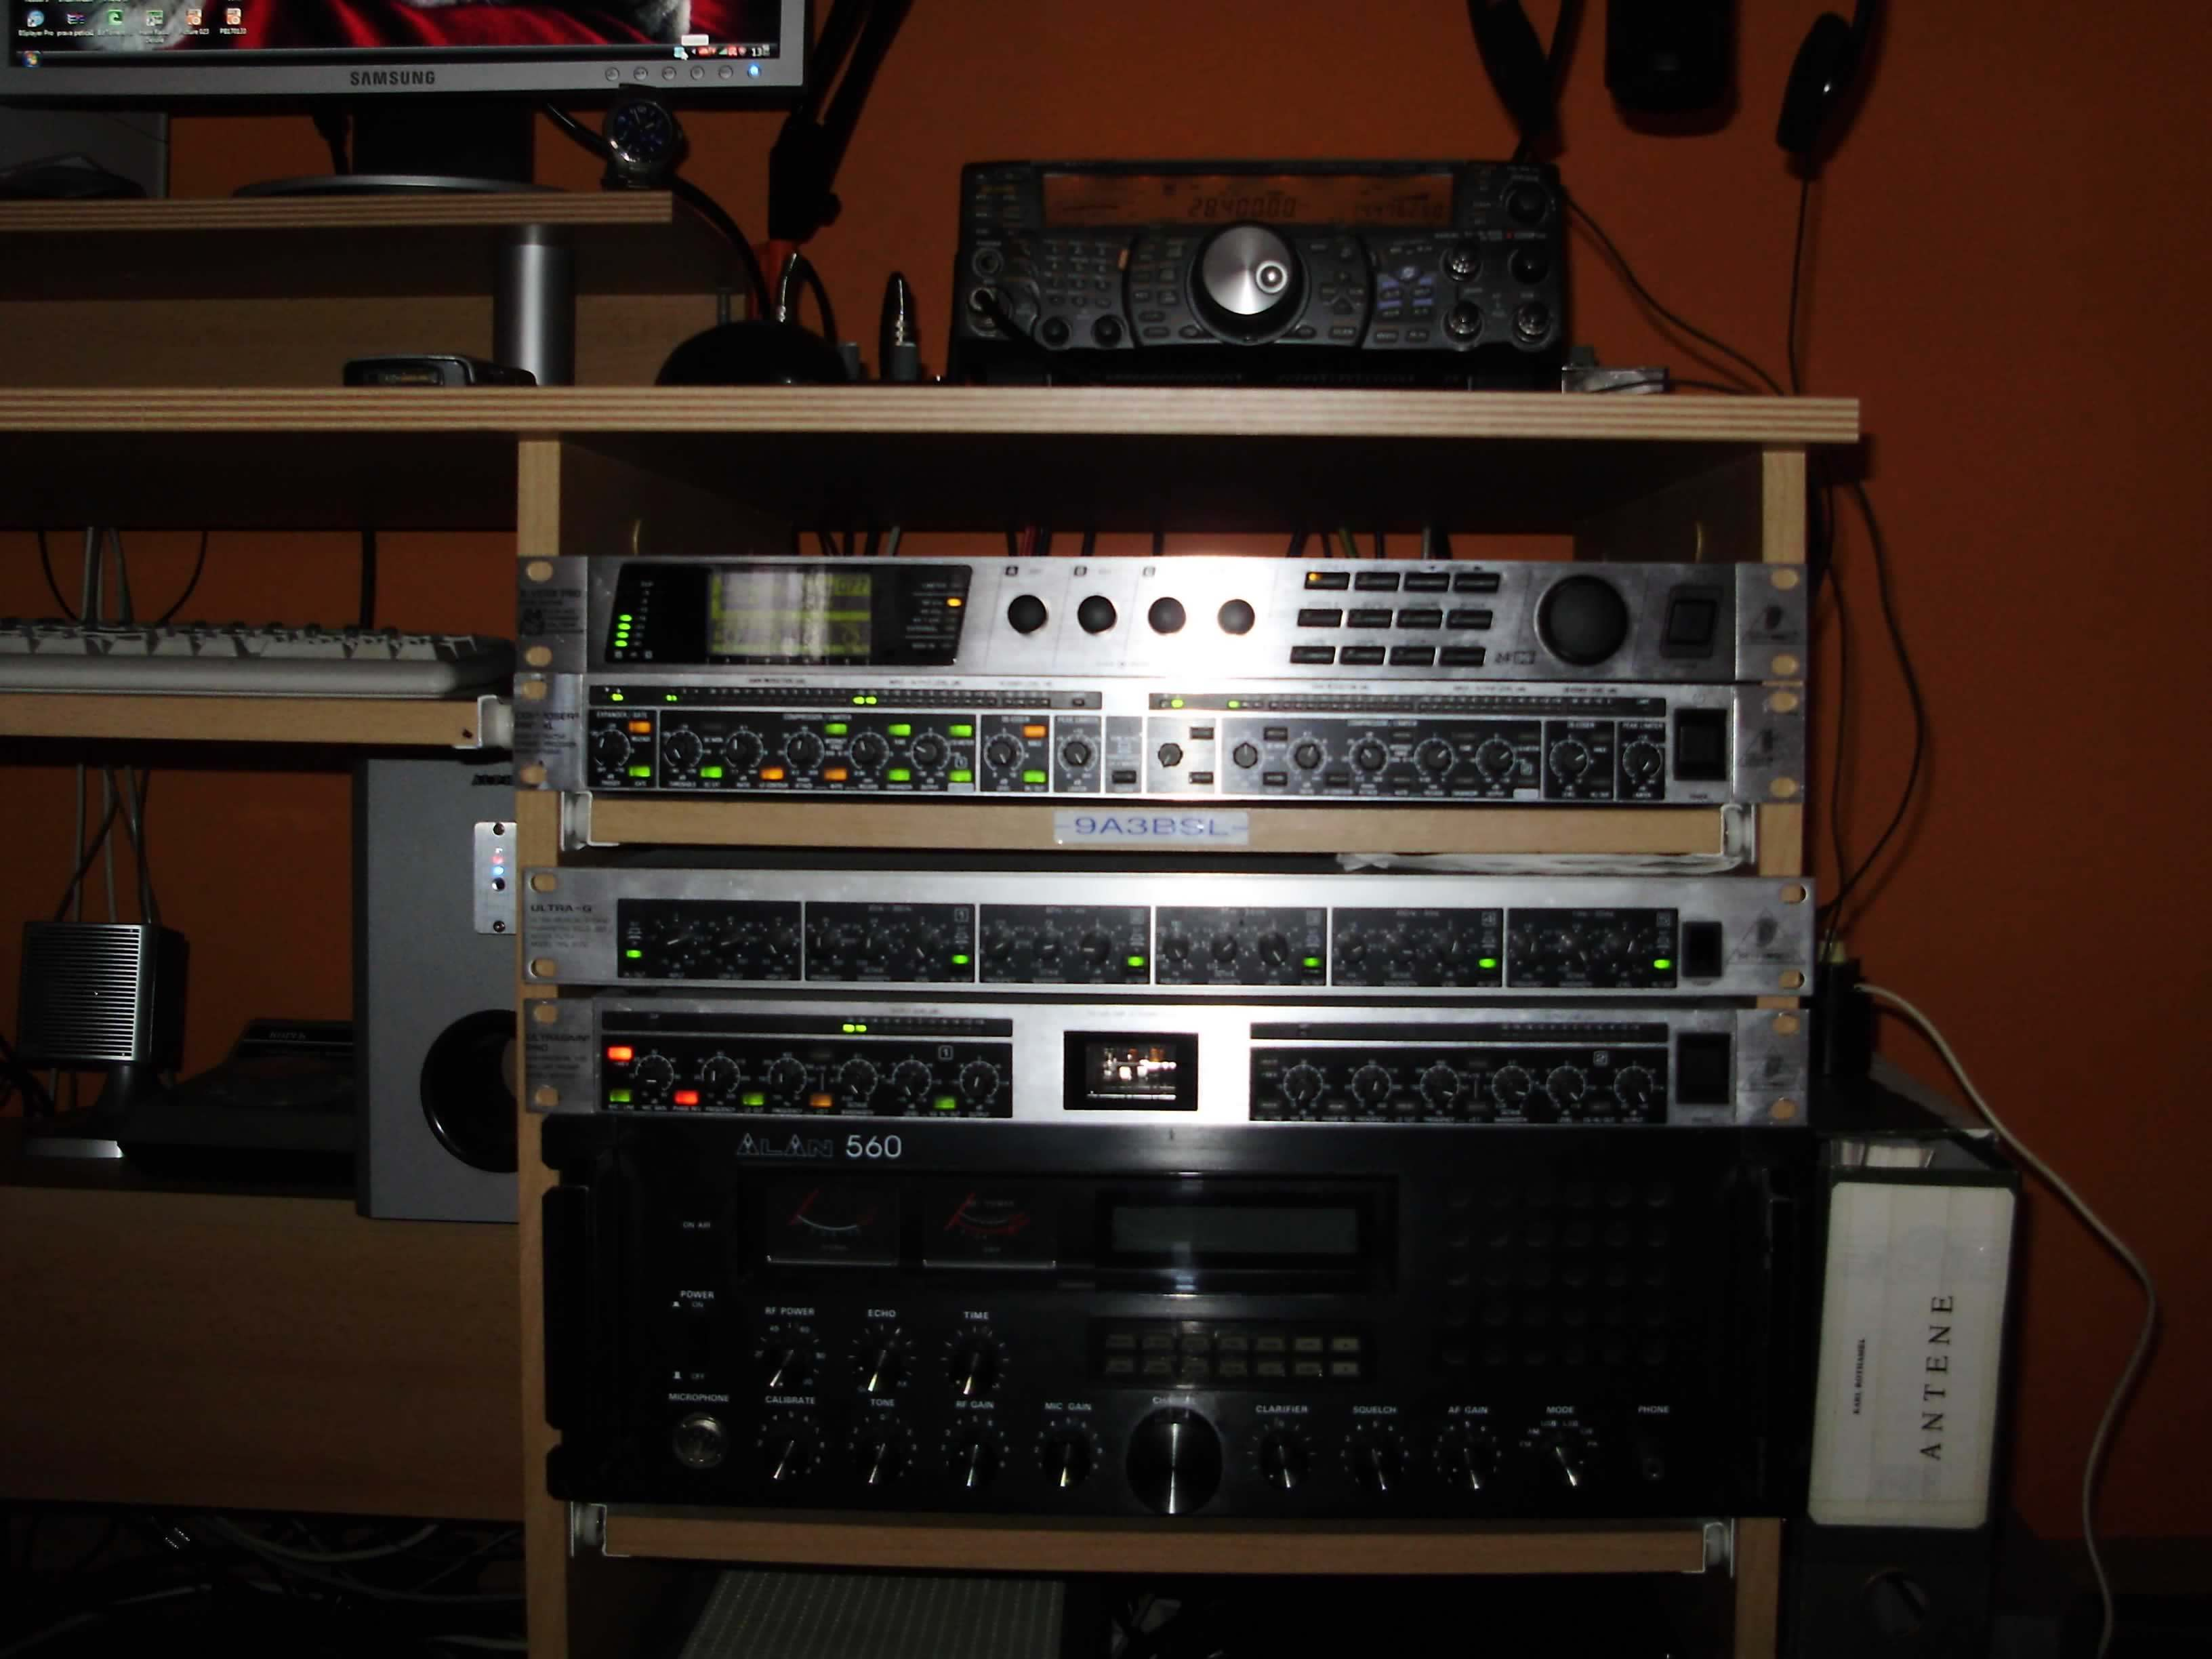 The Old 9A3BSL Rack!